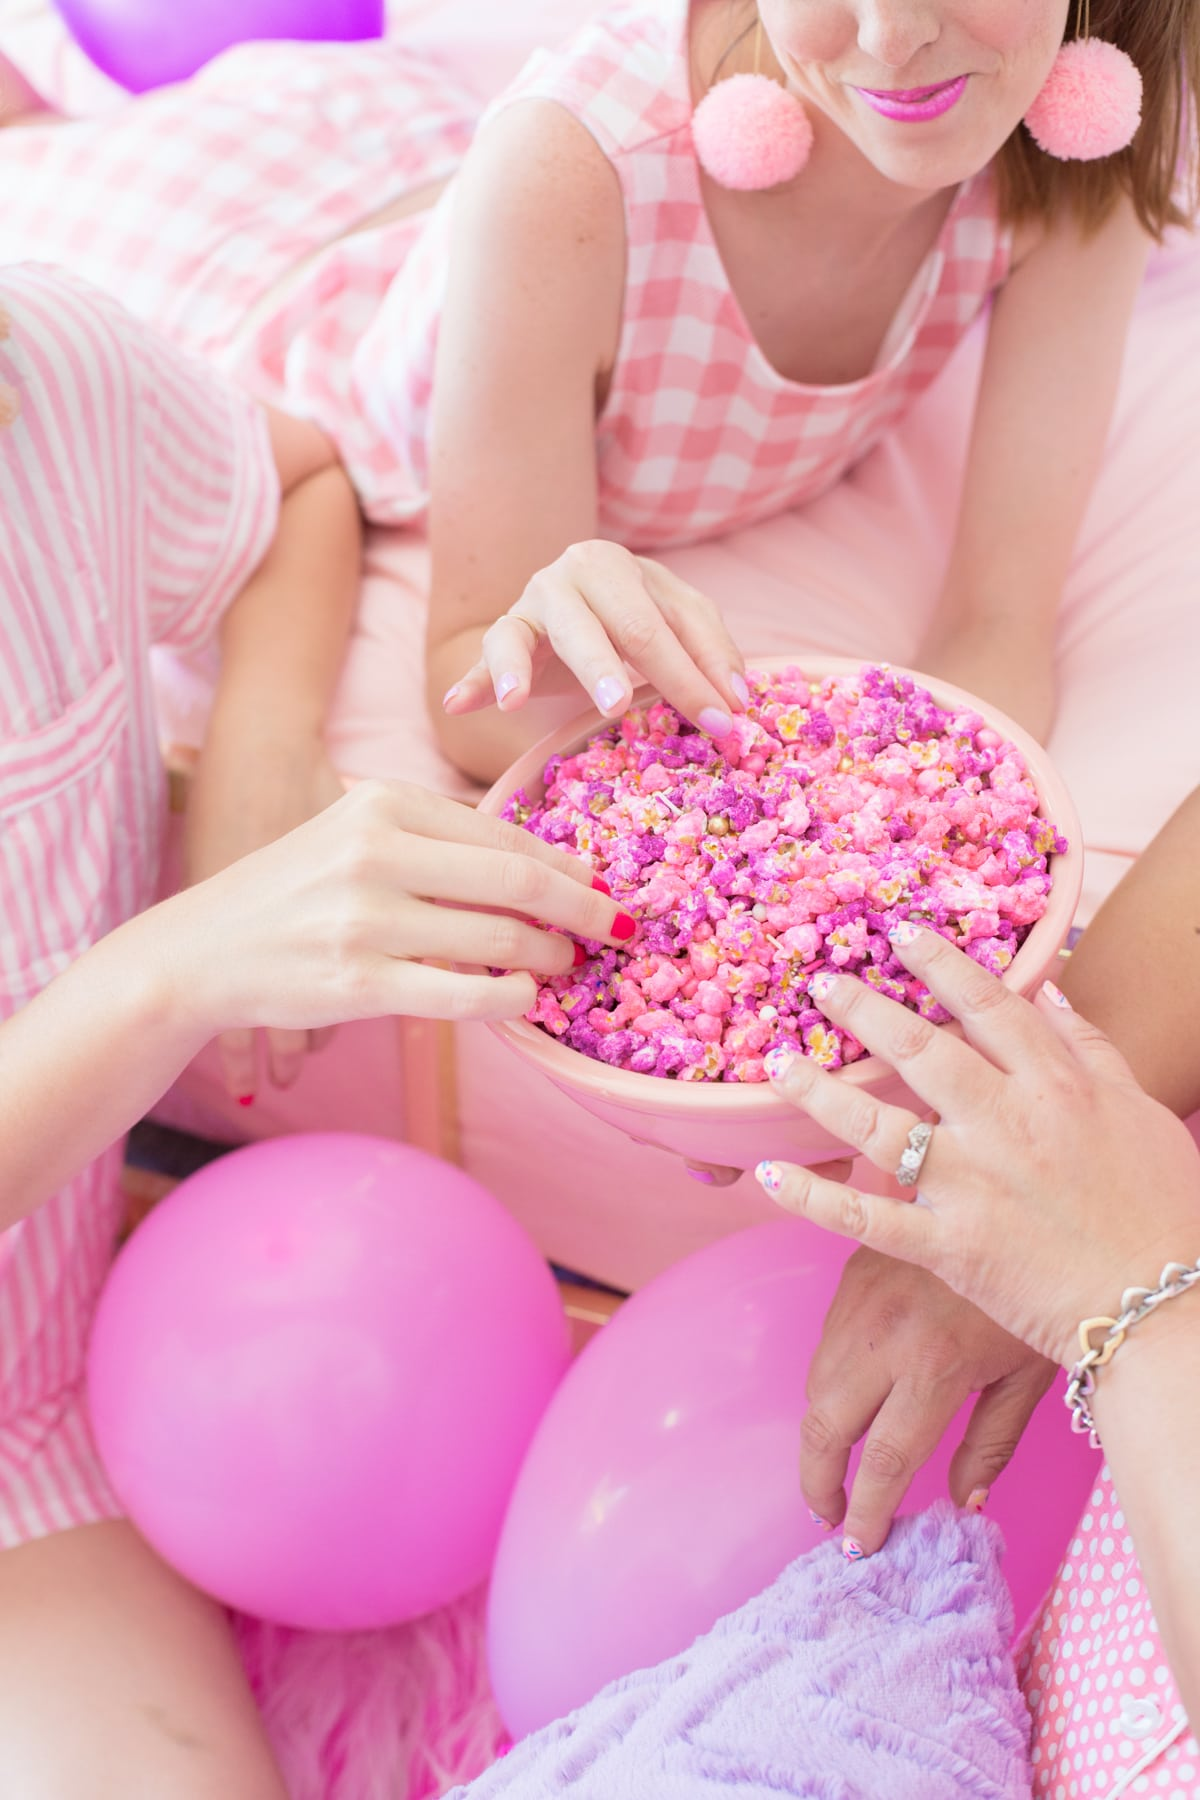 Three women sit on a bed and eat a bowl of pink candy